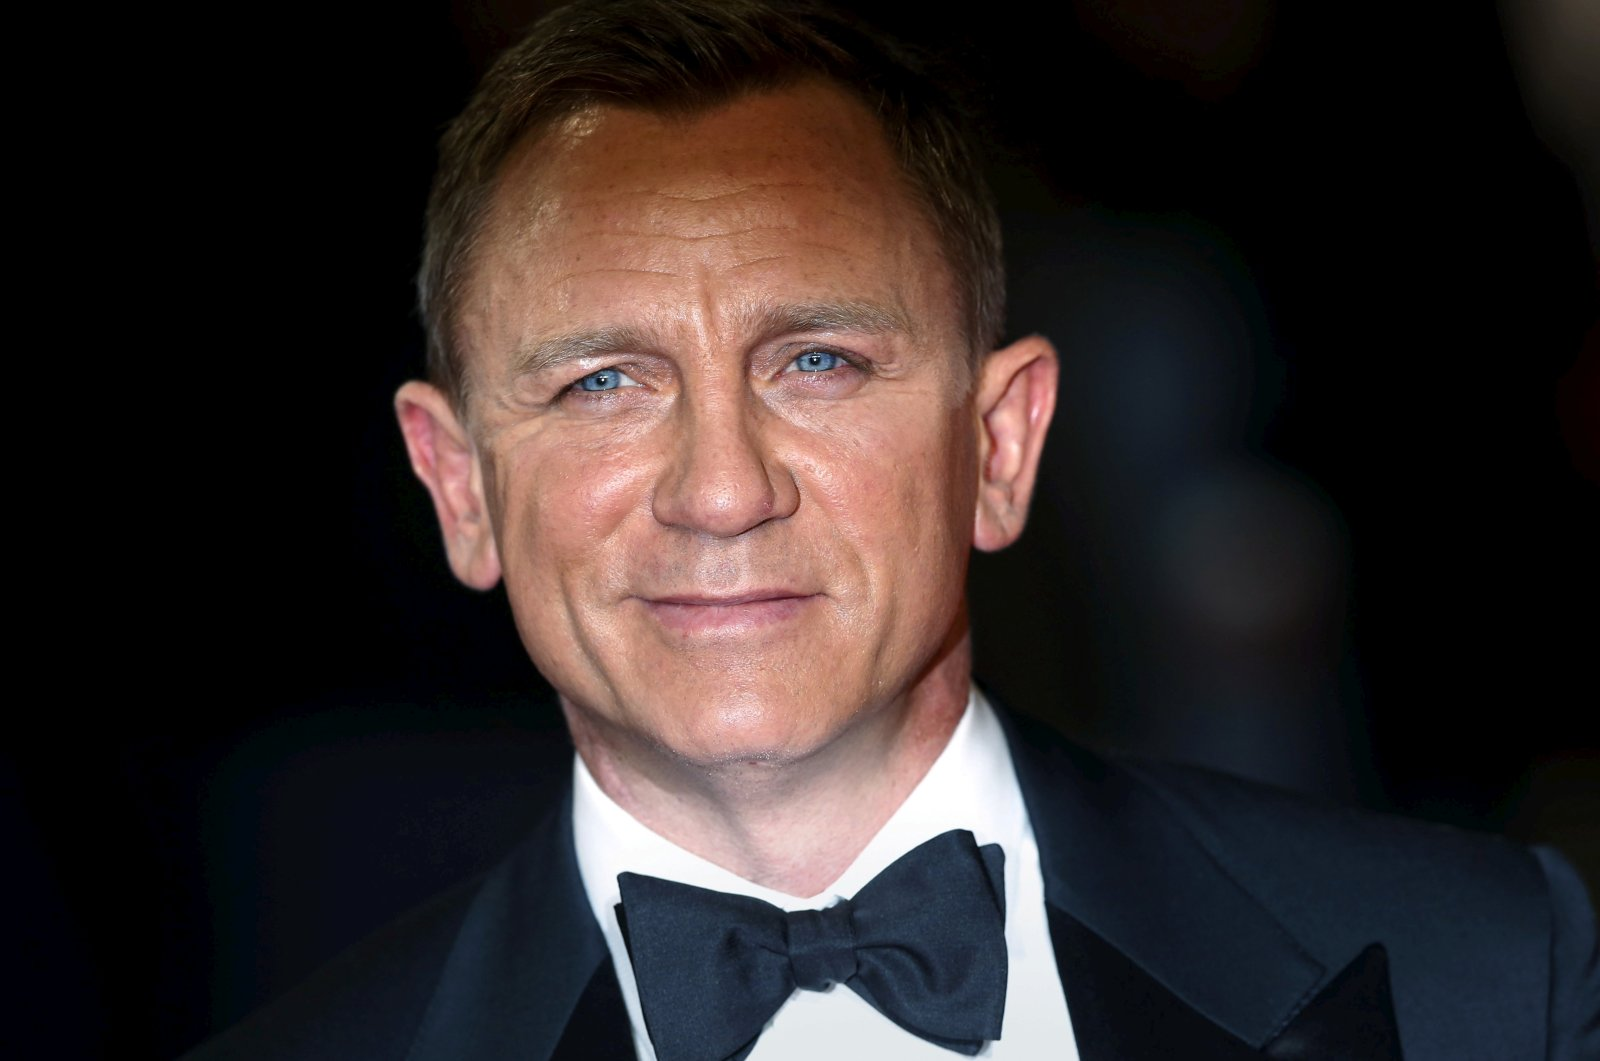 """Daniel Craig poses for photographers as he attends the world premiere of the James Bond 007 film """"Spectre"""" at the Royal Albert Hall in London, the U.K., Oct. 26, 2015. (Reuters Photo)"""